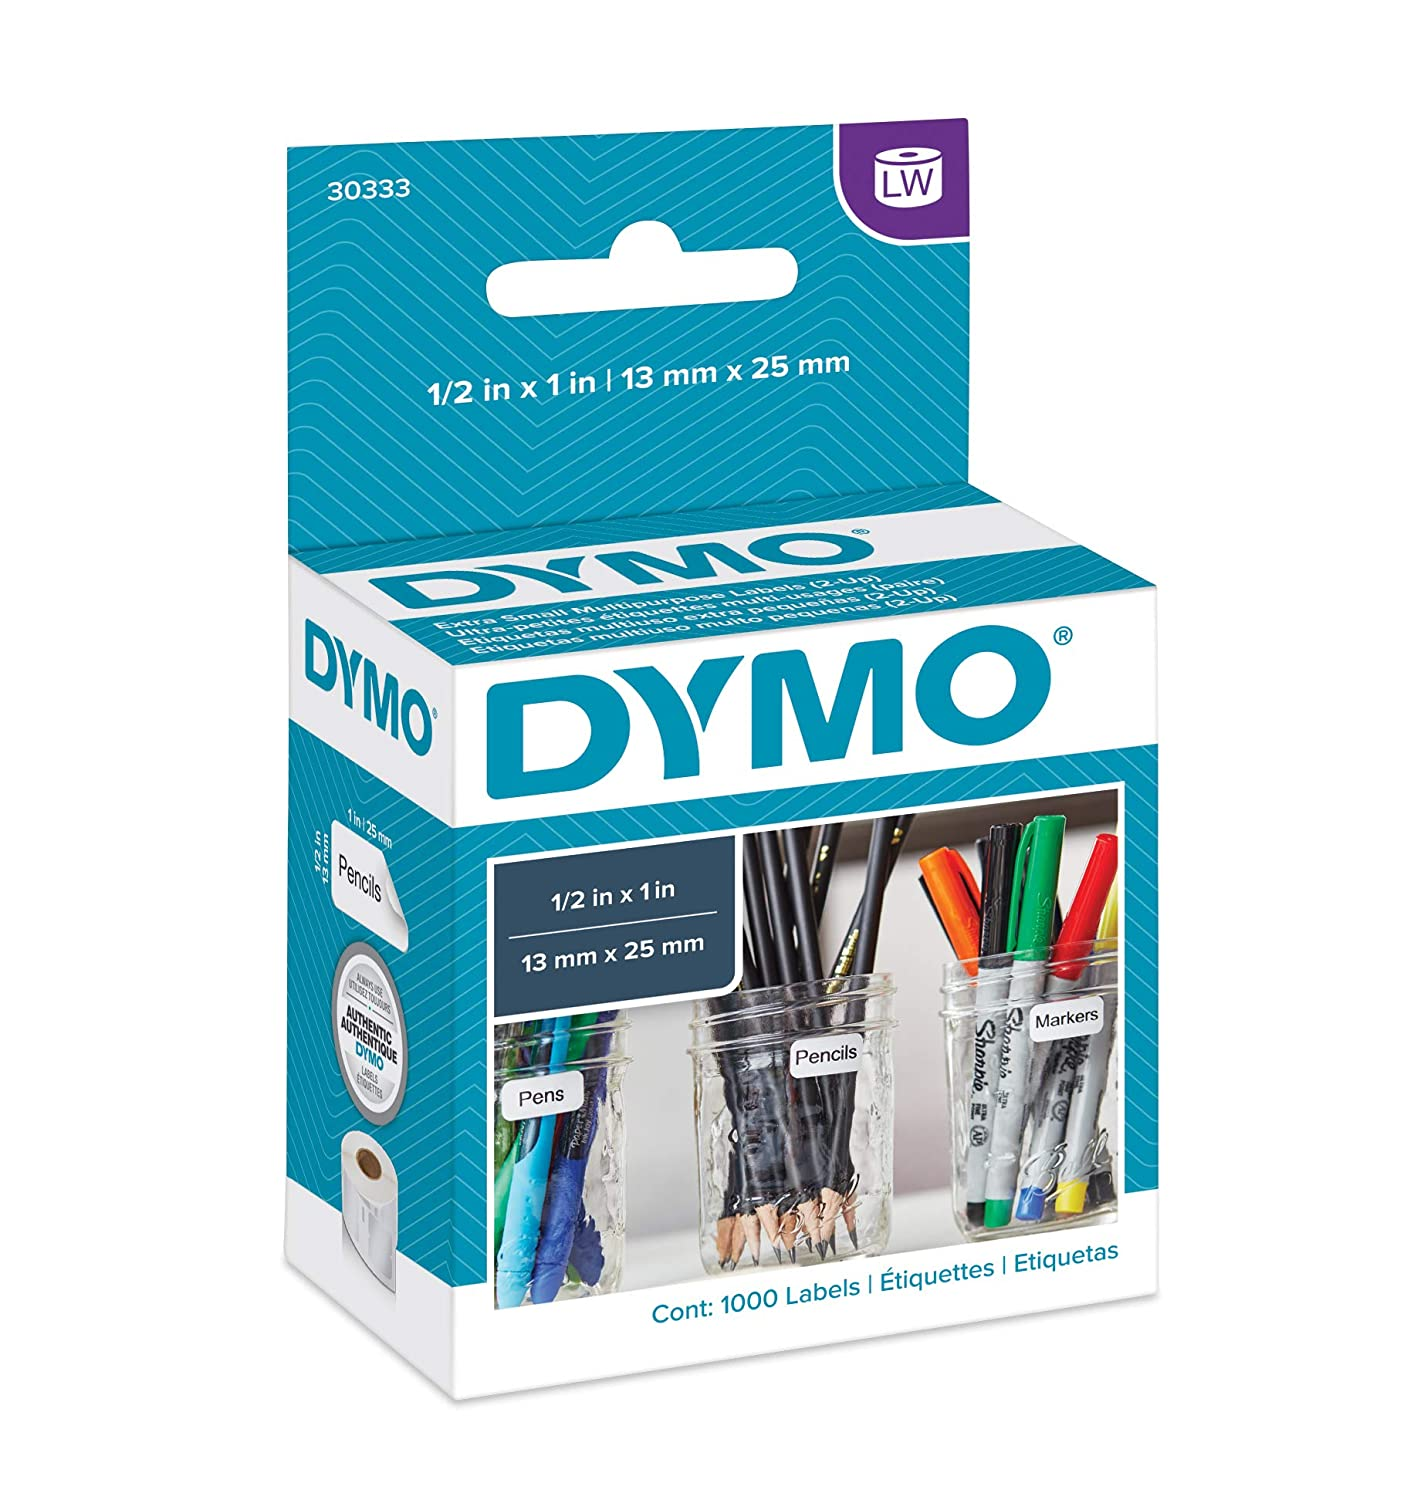 B000067SXG DYMO Authentic LW Extra-Small Multi-purpose Labels for LabelWriter Label Printers, White, 1/2'' x 1'', 1 roll of 1,000 (30333) 81nZm9O26qL